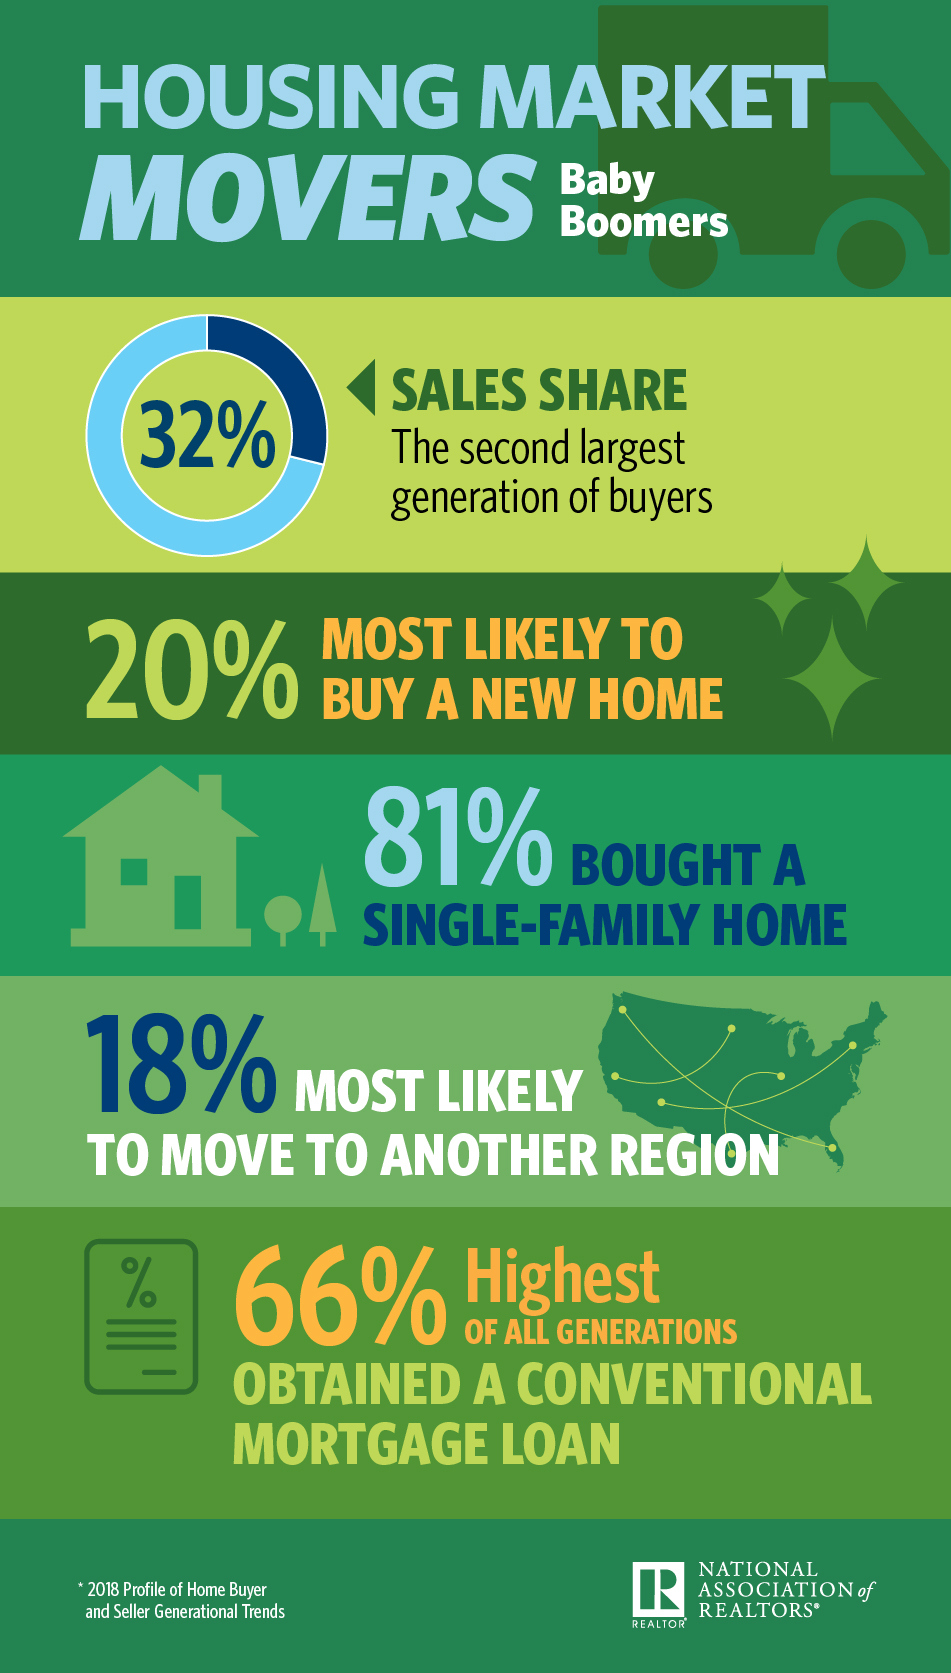 Infographic: Housing Market Movers: Baby Boomers